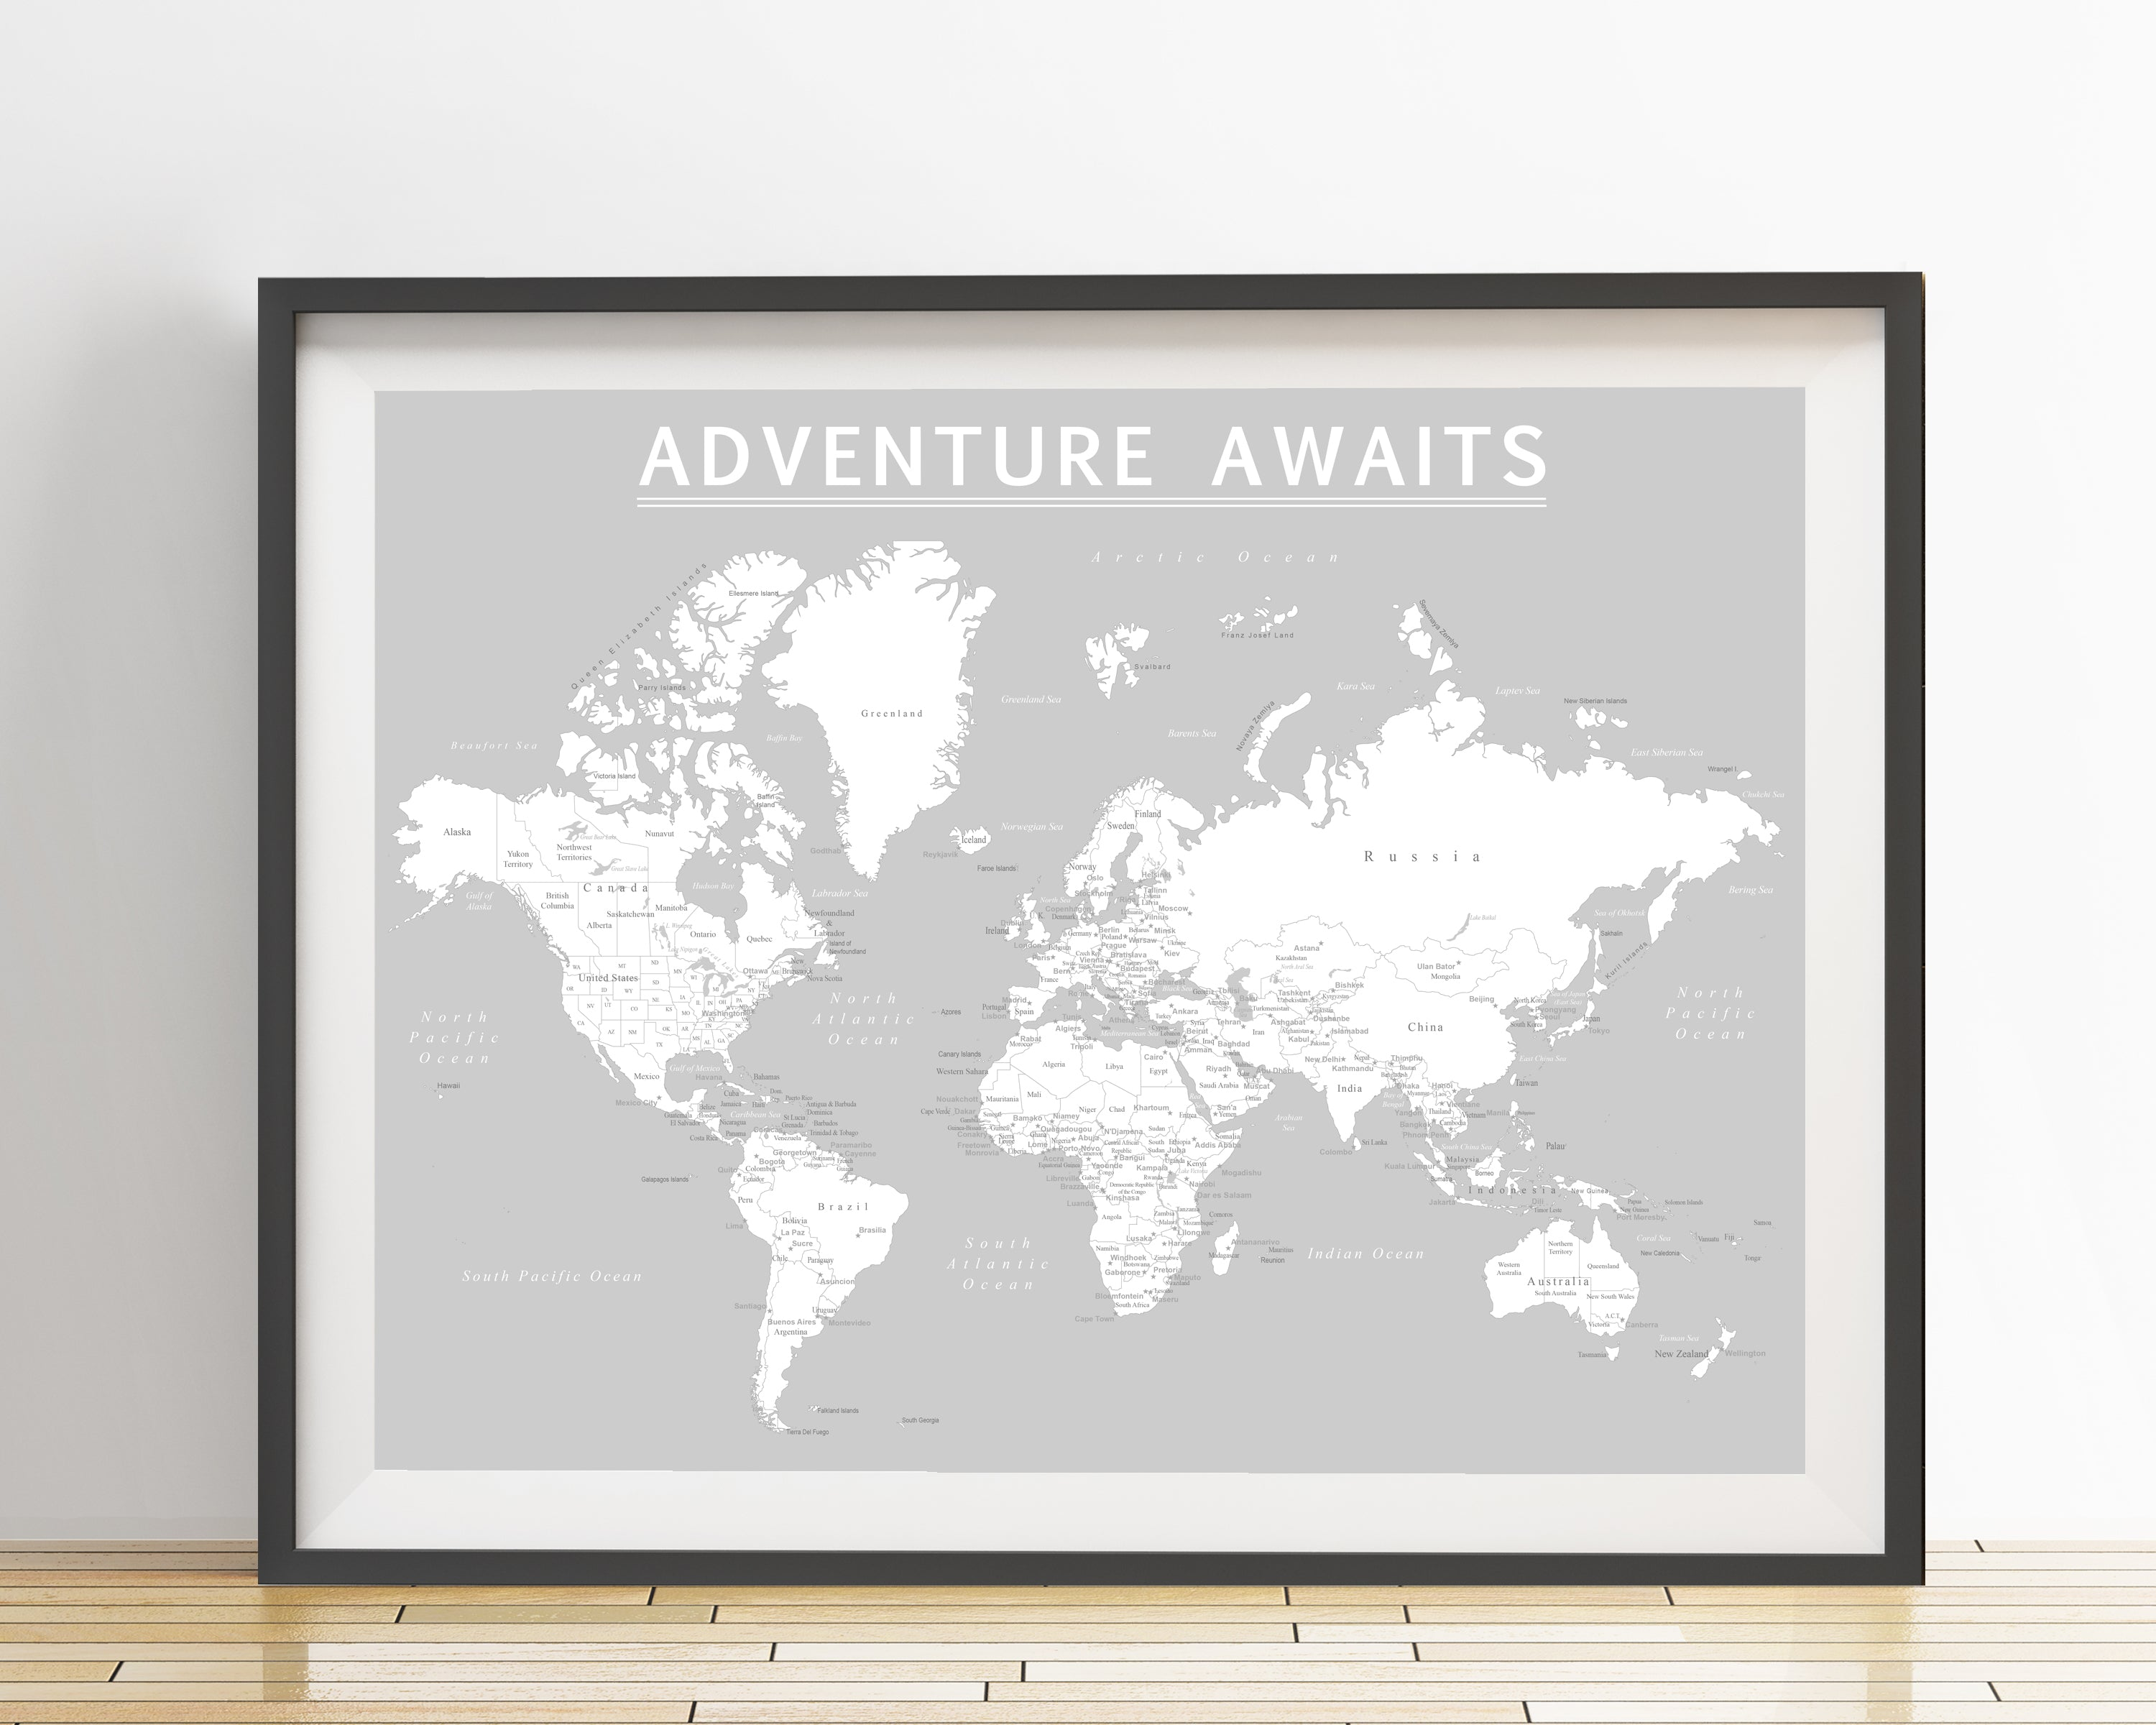 World map poster light gray an adventure awaits world map poster light gray gumiabroncs Image collections